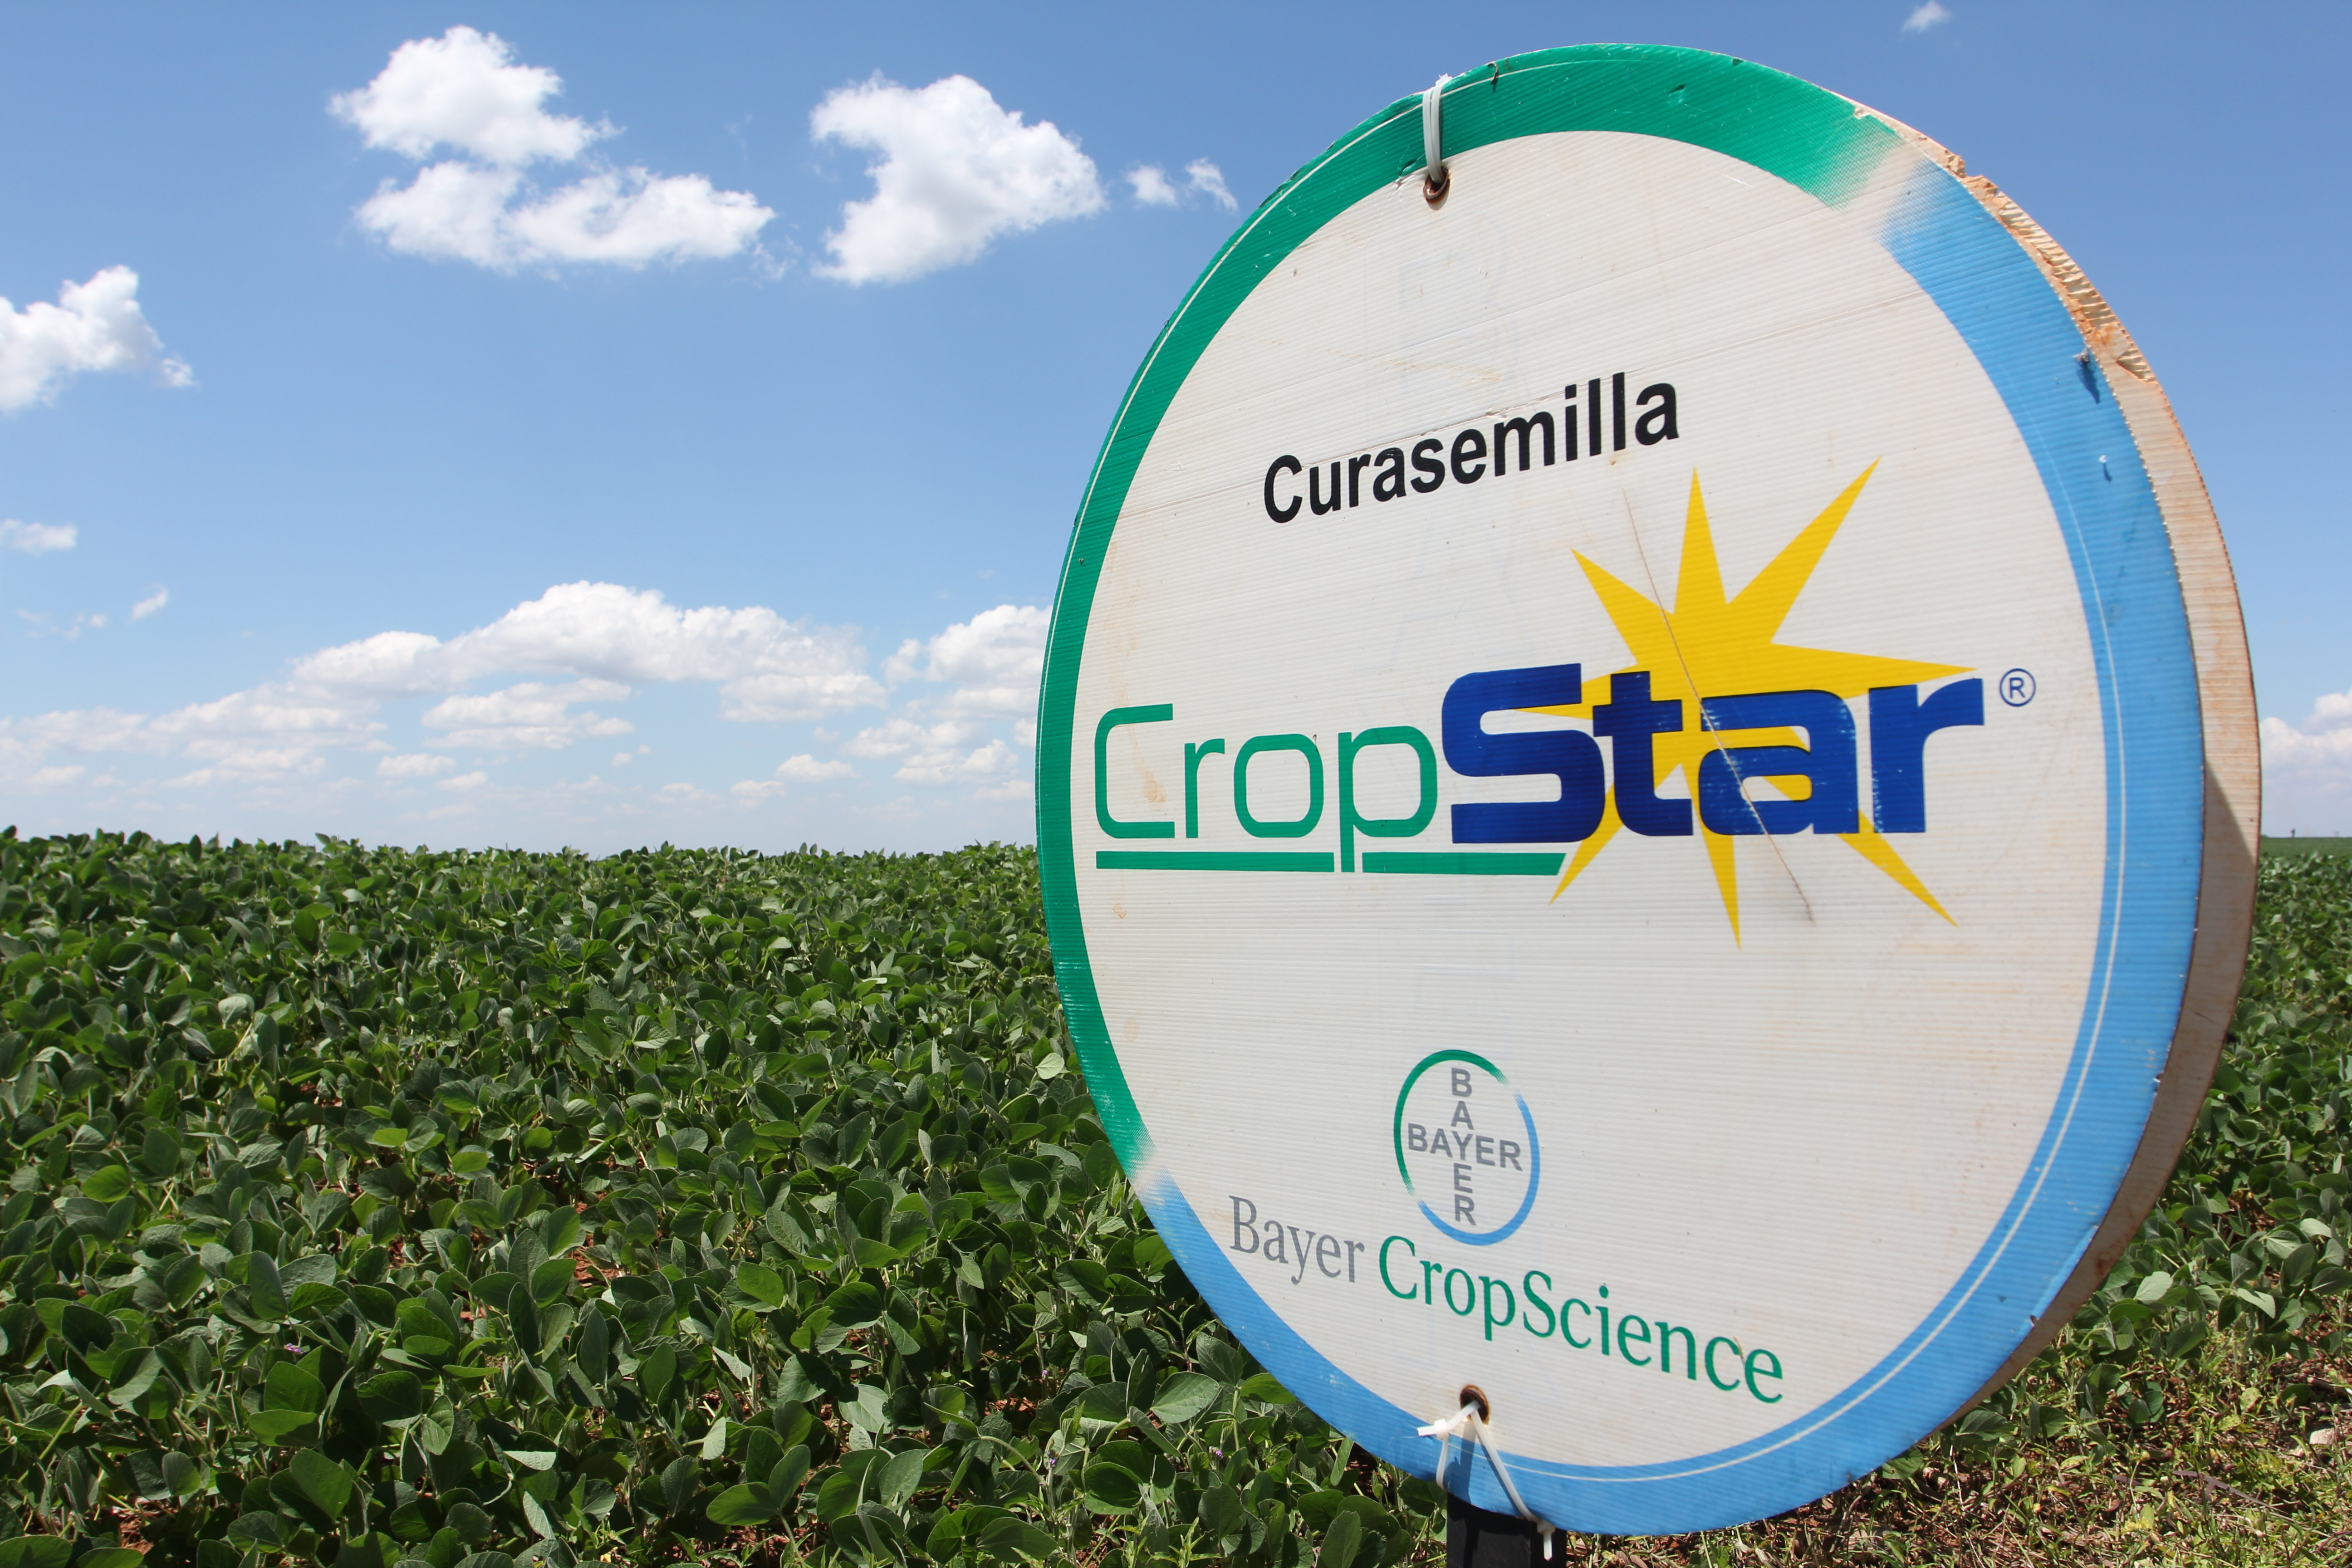 Paraguay: Advertising for the Cropstar insecticide  from Bayer cropscience